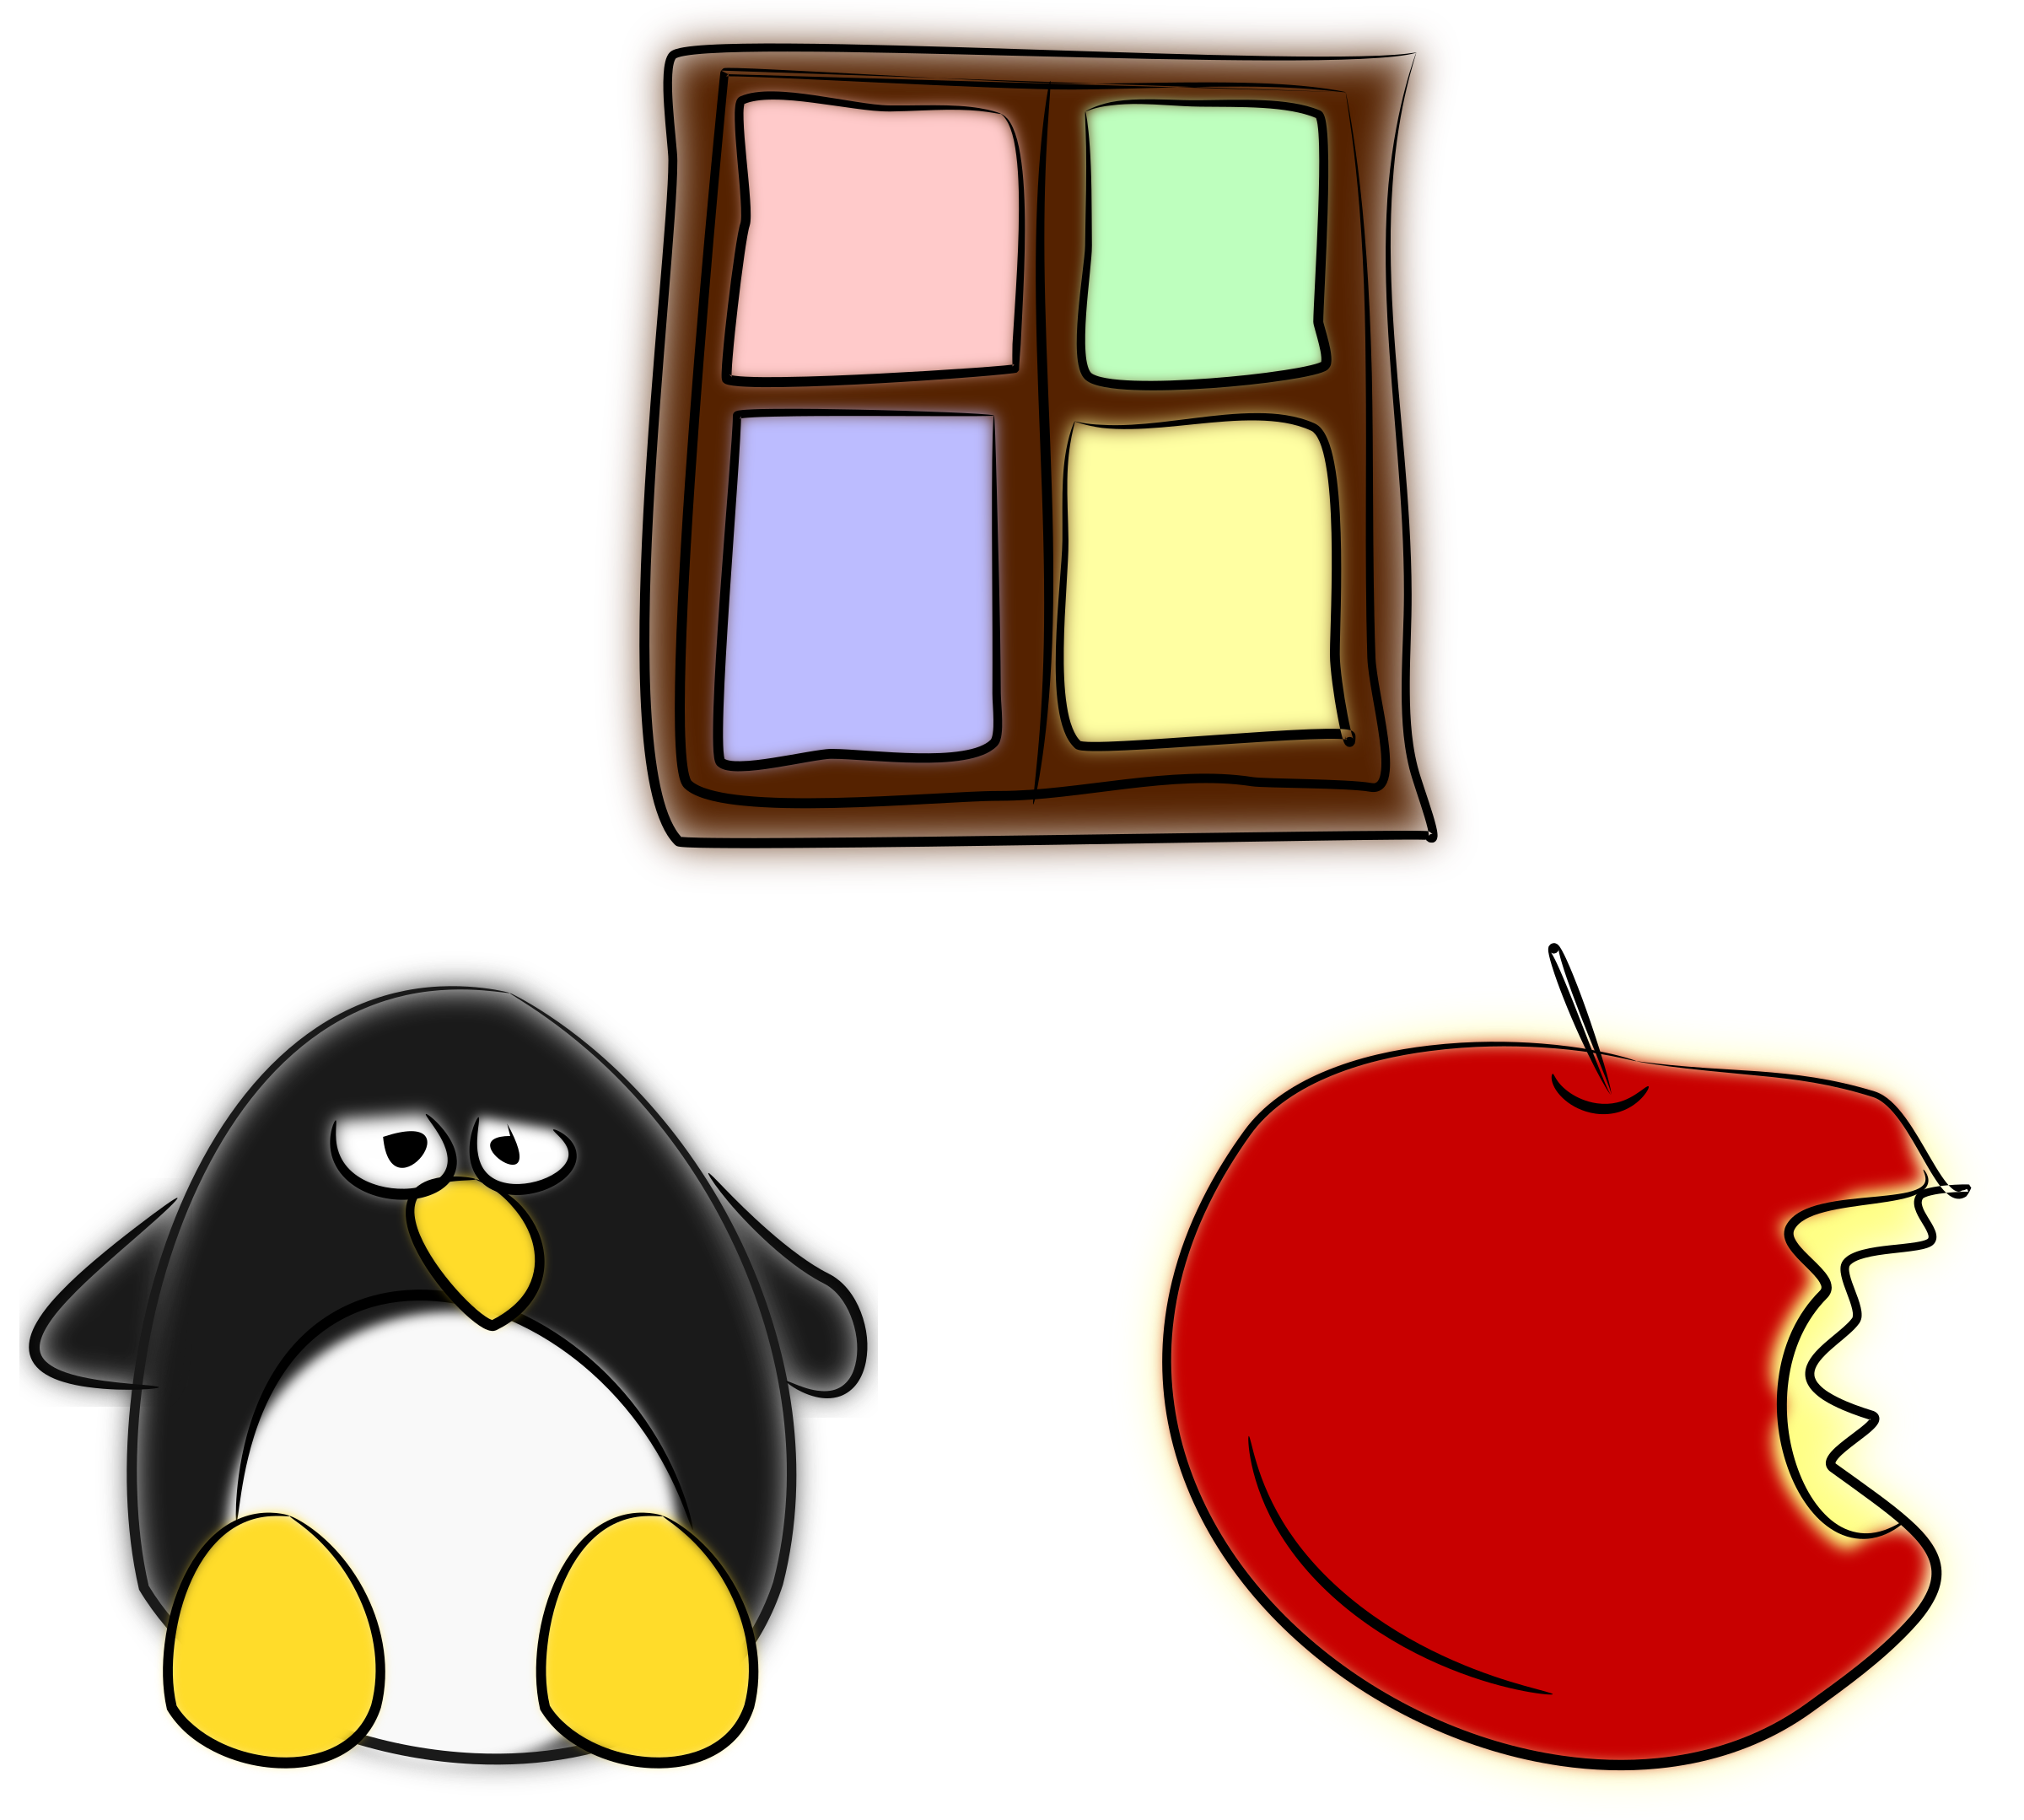 Window, penguin and apple by mi_brami